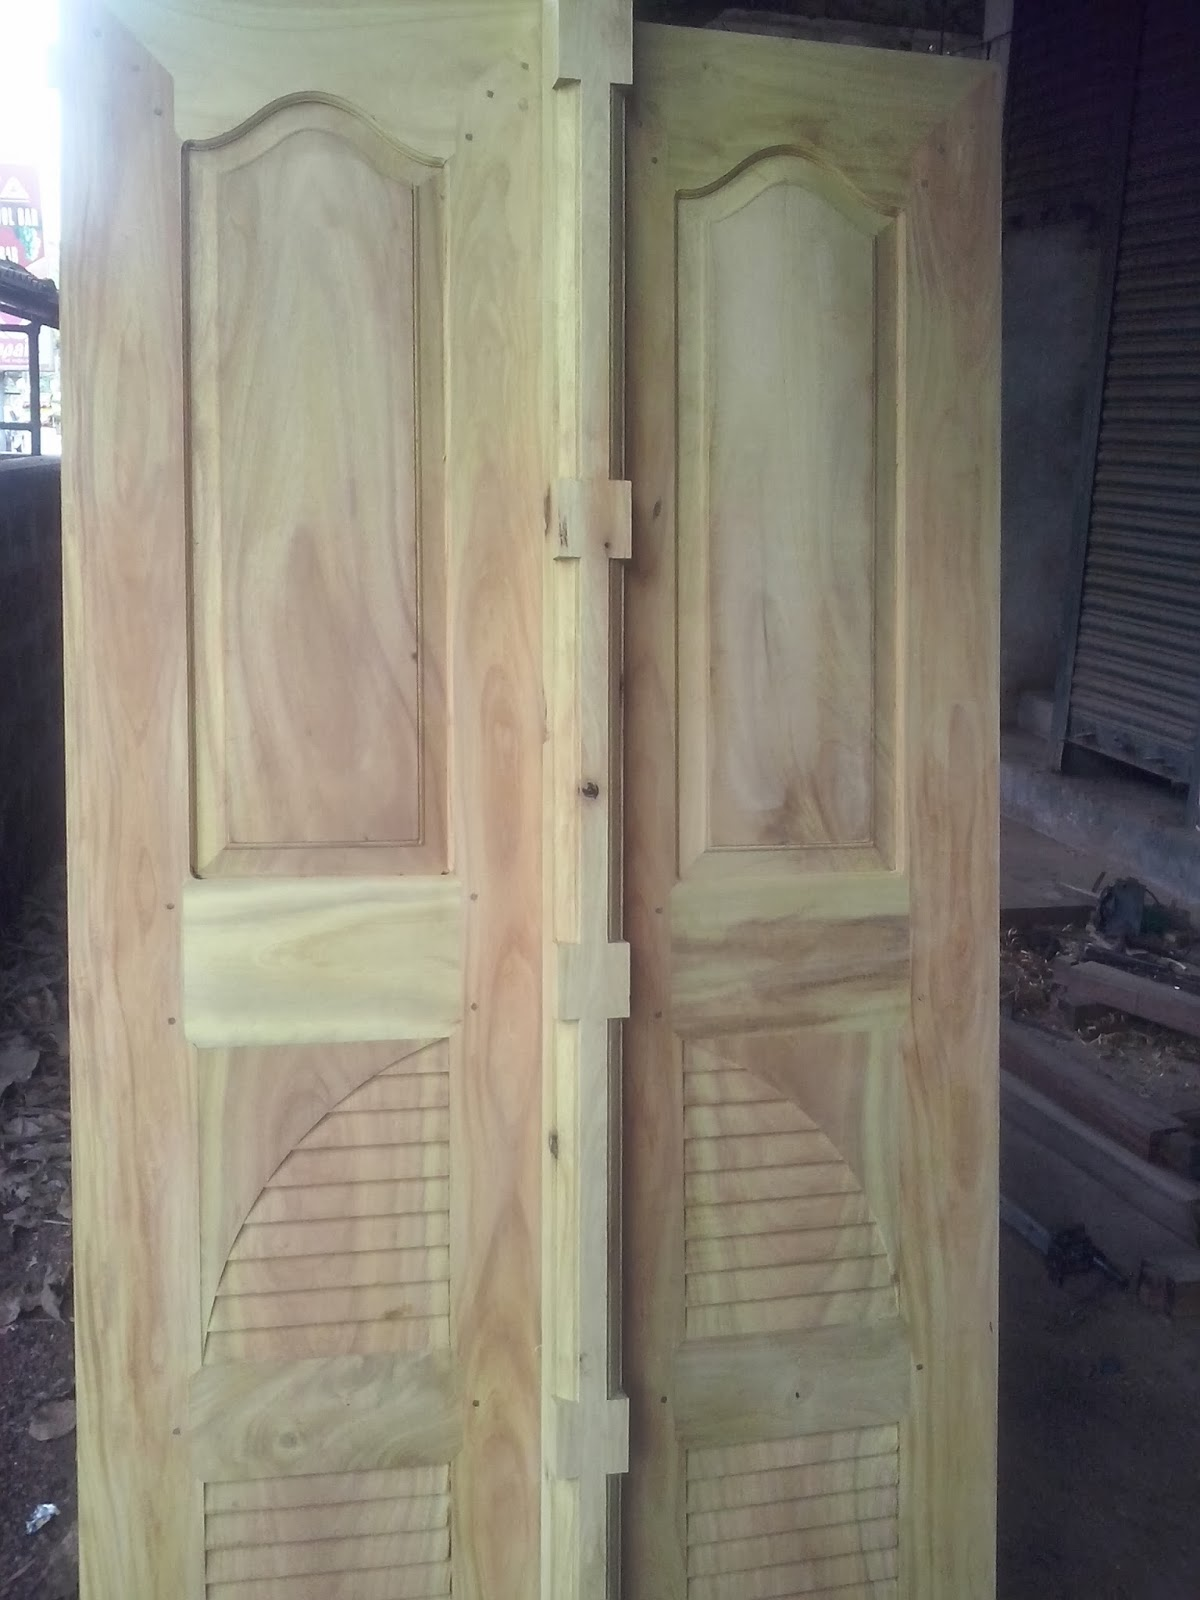 Bavas wood works main entrance wooden double door designs for Entrance double door designs for houses